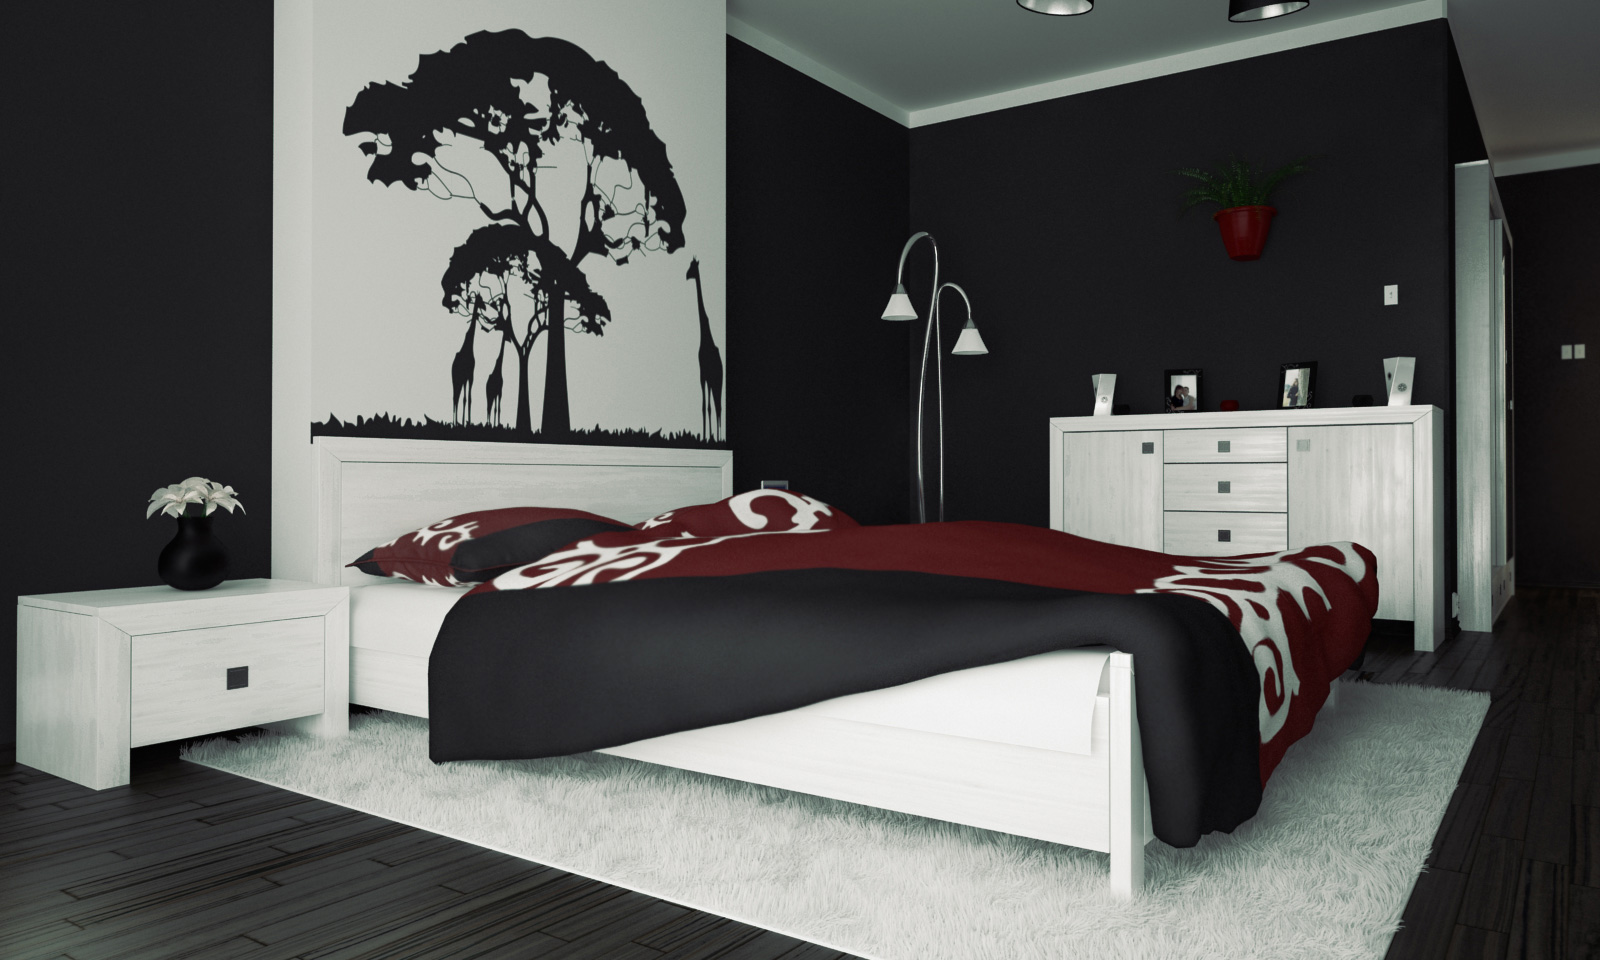 Bedroom Ideas Red Black And White Part - 26: Interesting Black And White Mural Above Headboard Completing Black And White  Bedroom Interior Concept